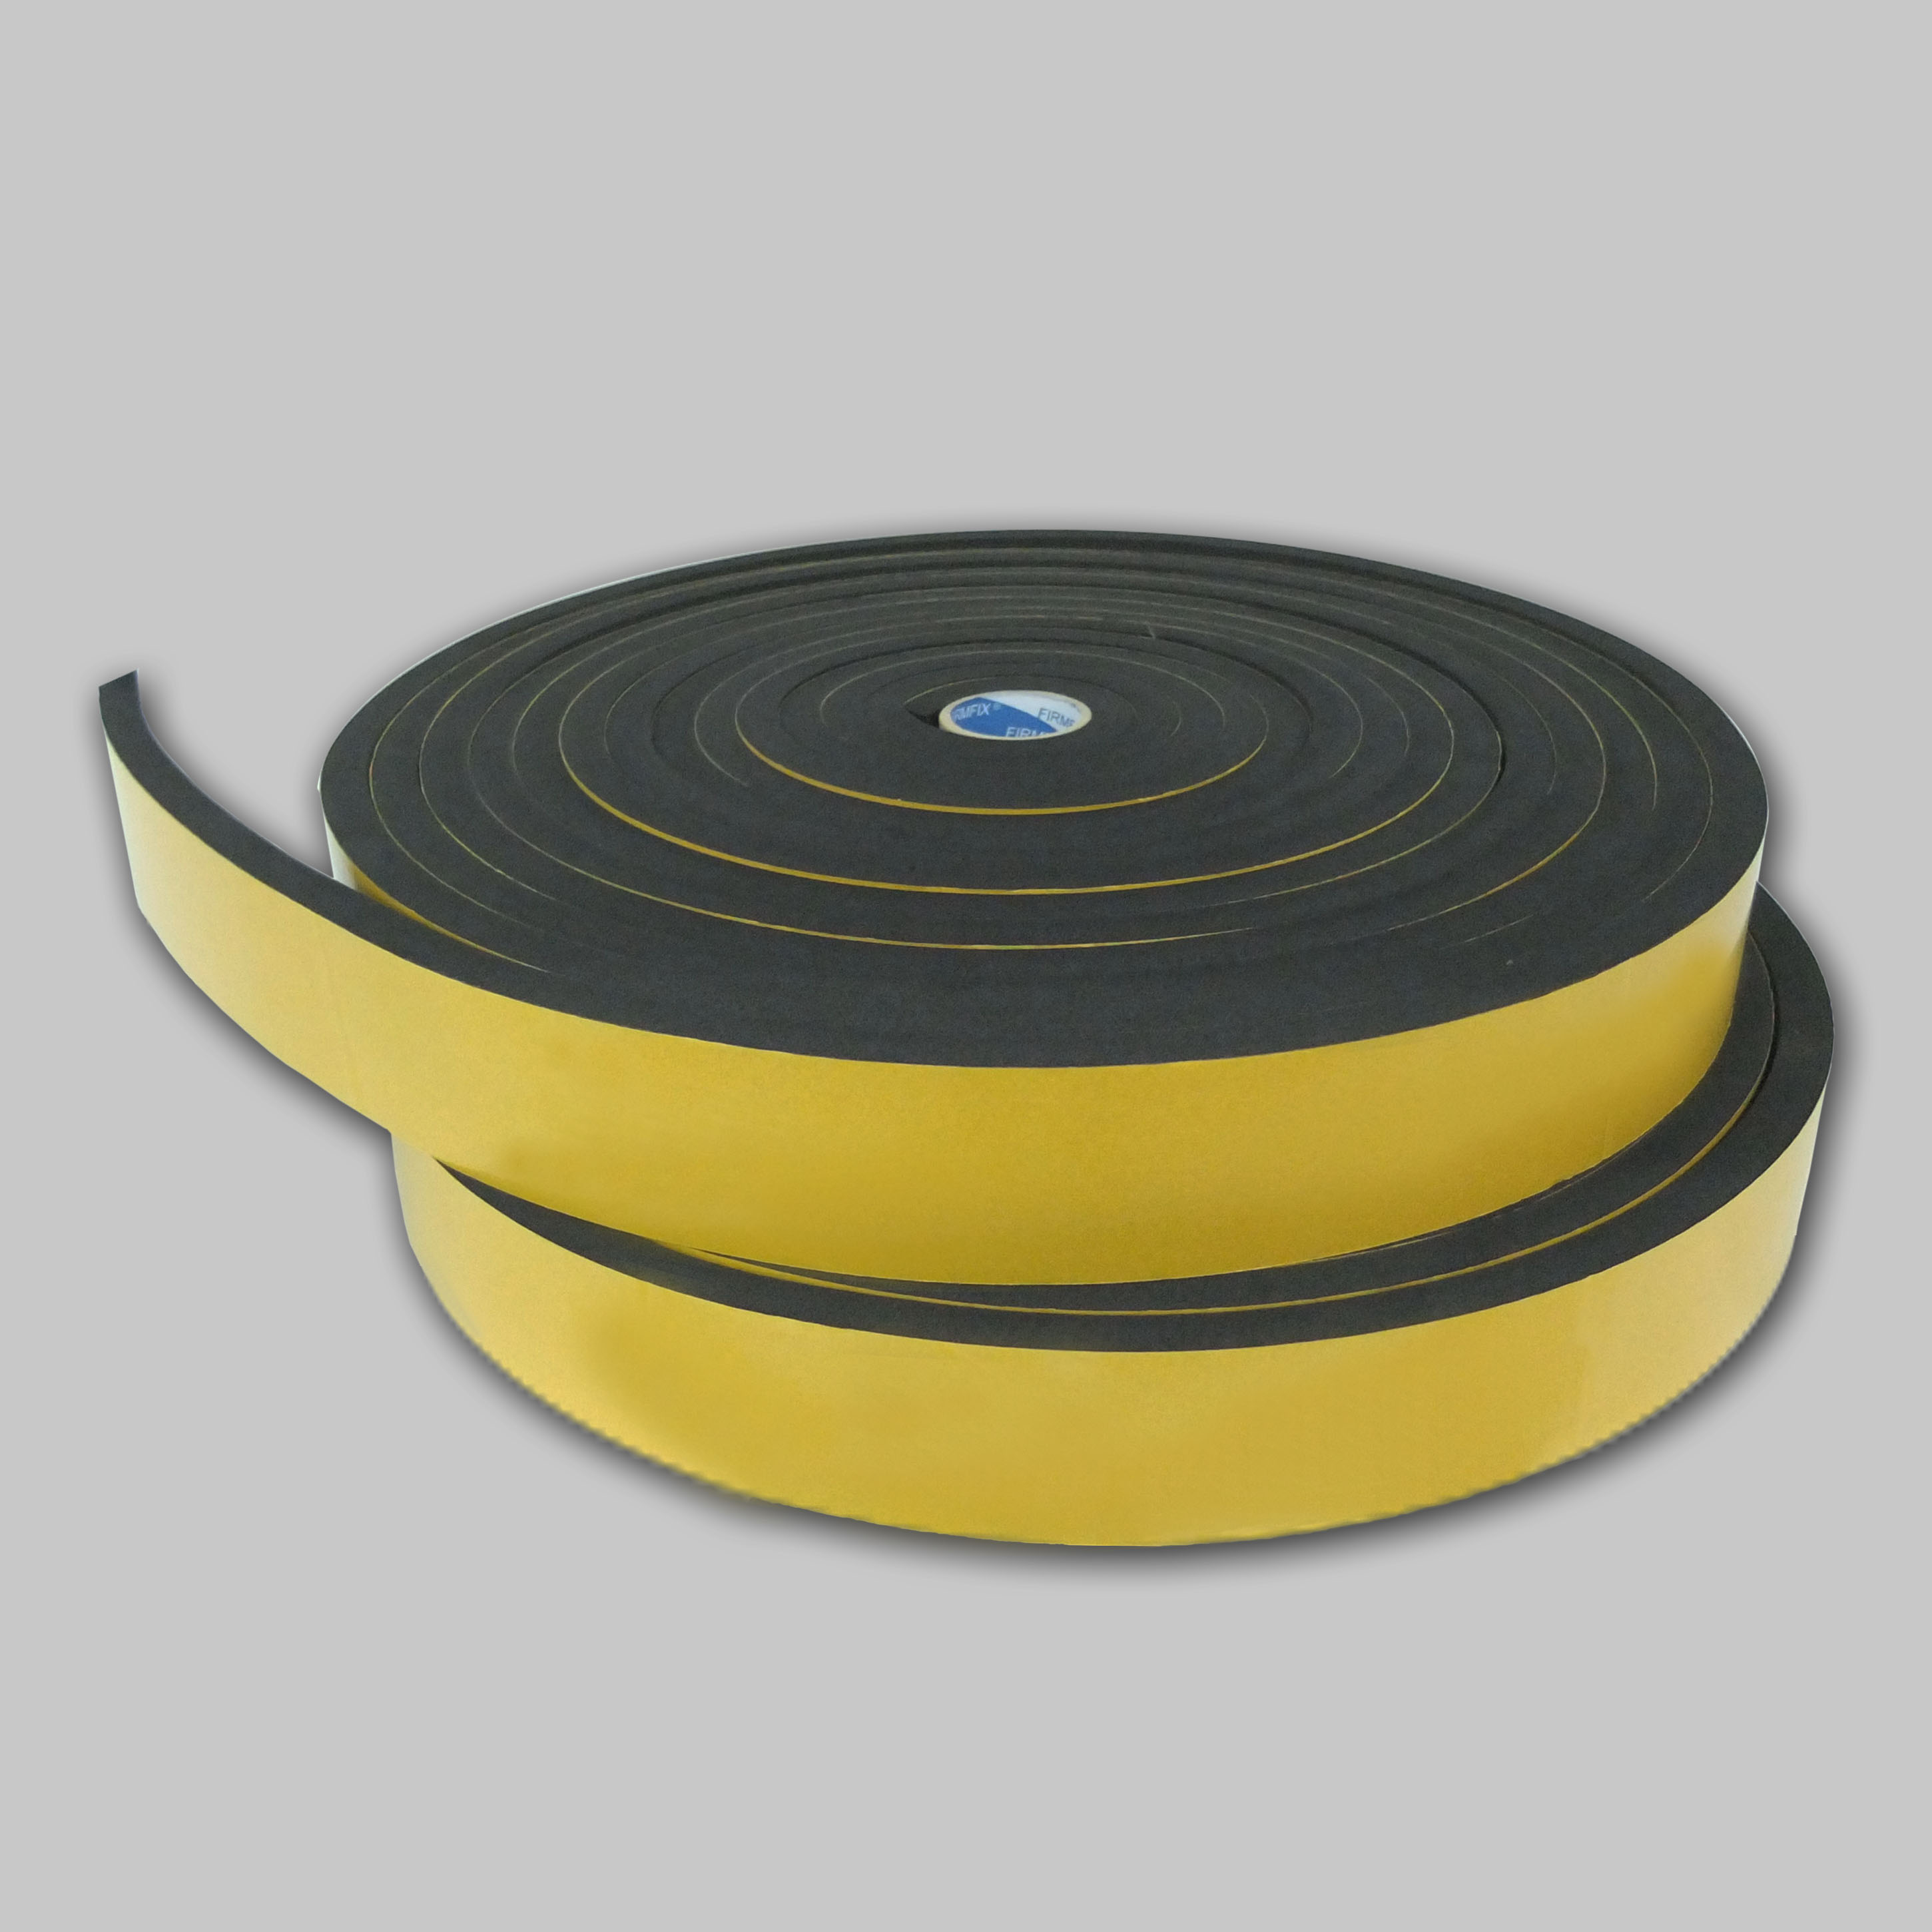 FIRMFIX Gasket Sealing Foam Tapes